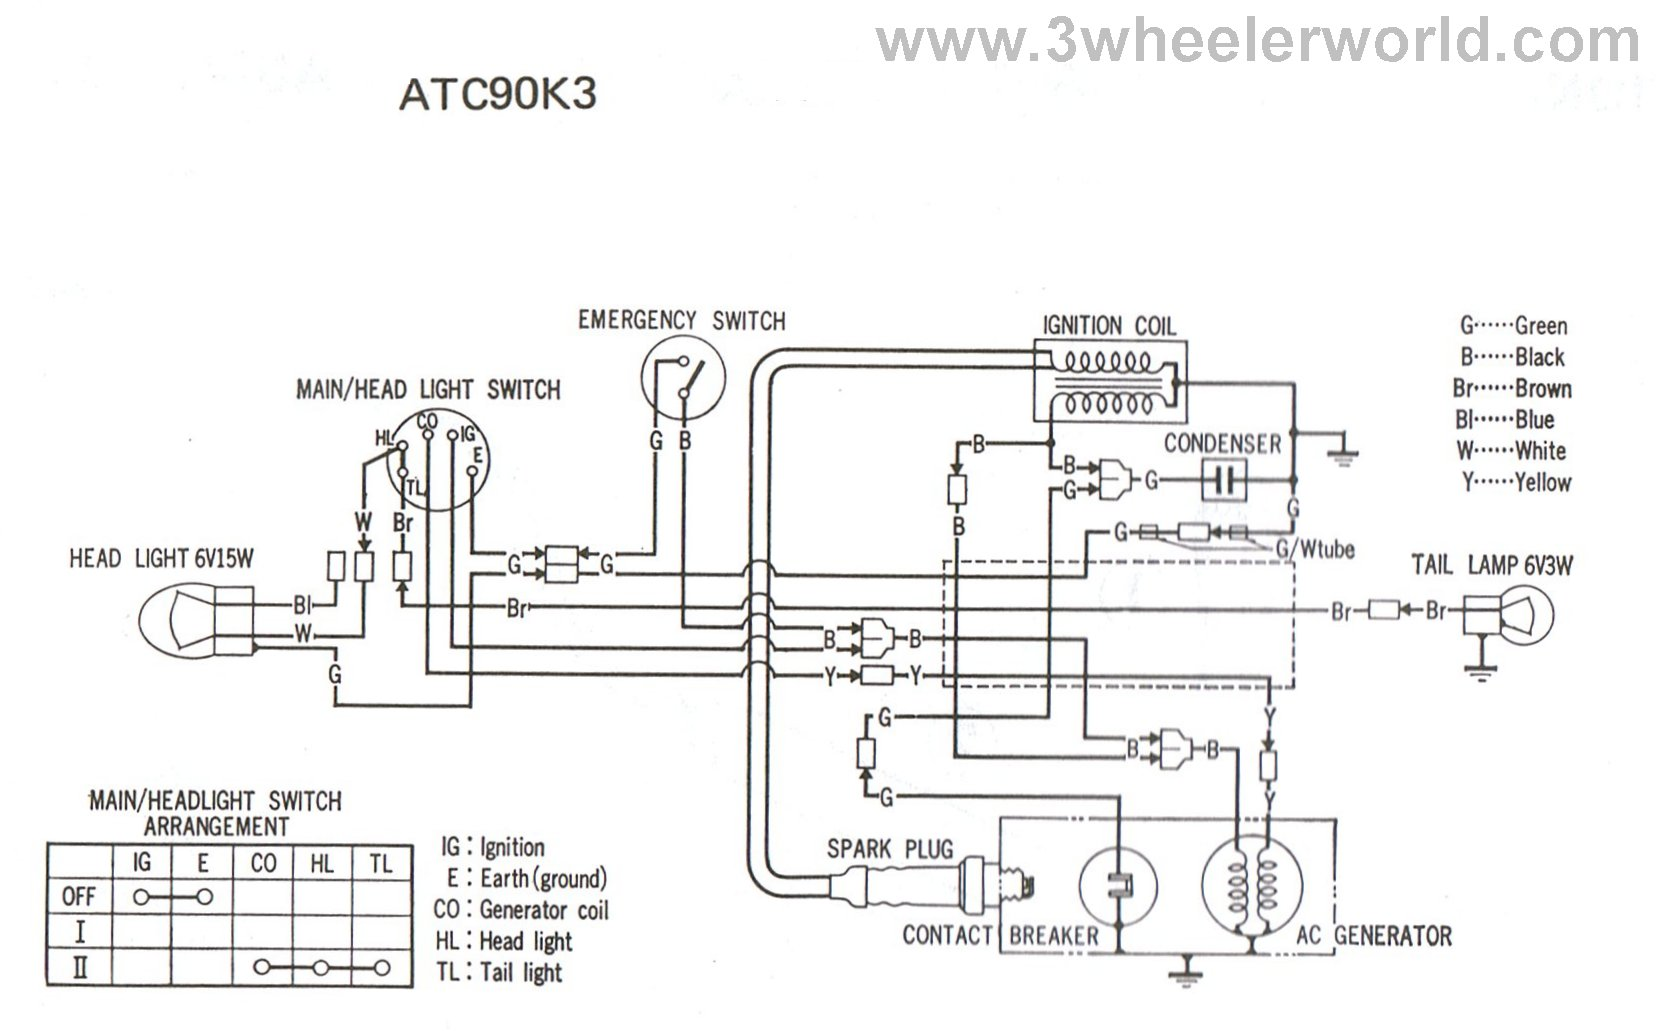 ATC90K3HM 3 wheeler world tech help honda wiring diagrams honda atv 300 fourtrax 1989 wiring diagram at edmiracle.co